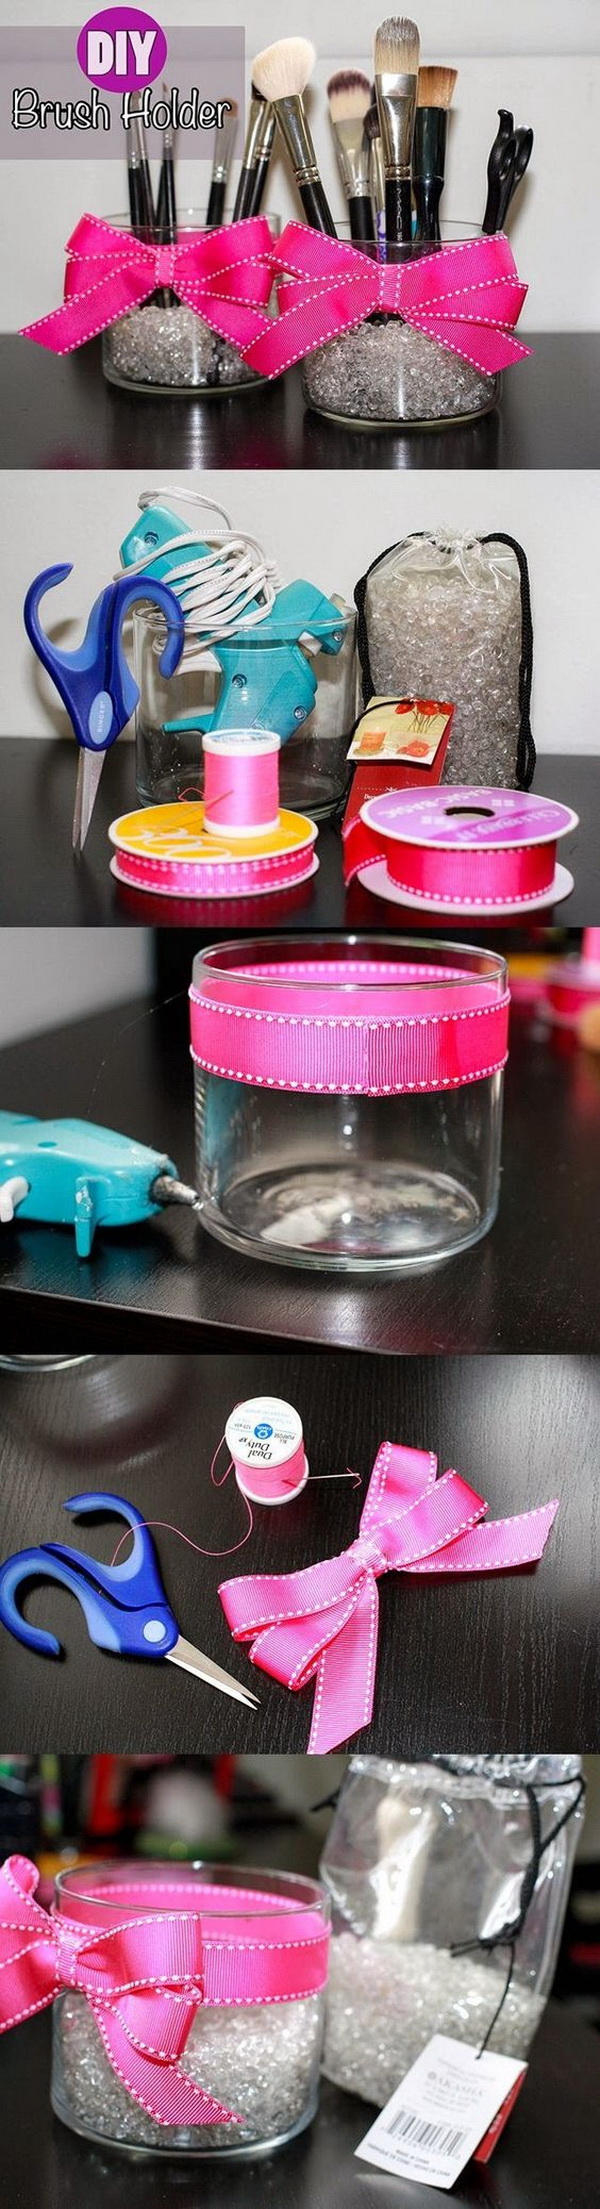 DIY Makeup Brush Organizers. Another version of cute DIY makeup brush organizer for your inspiration.  All you need some empty glass jars, cute fillers and ribbon.